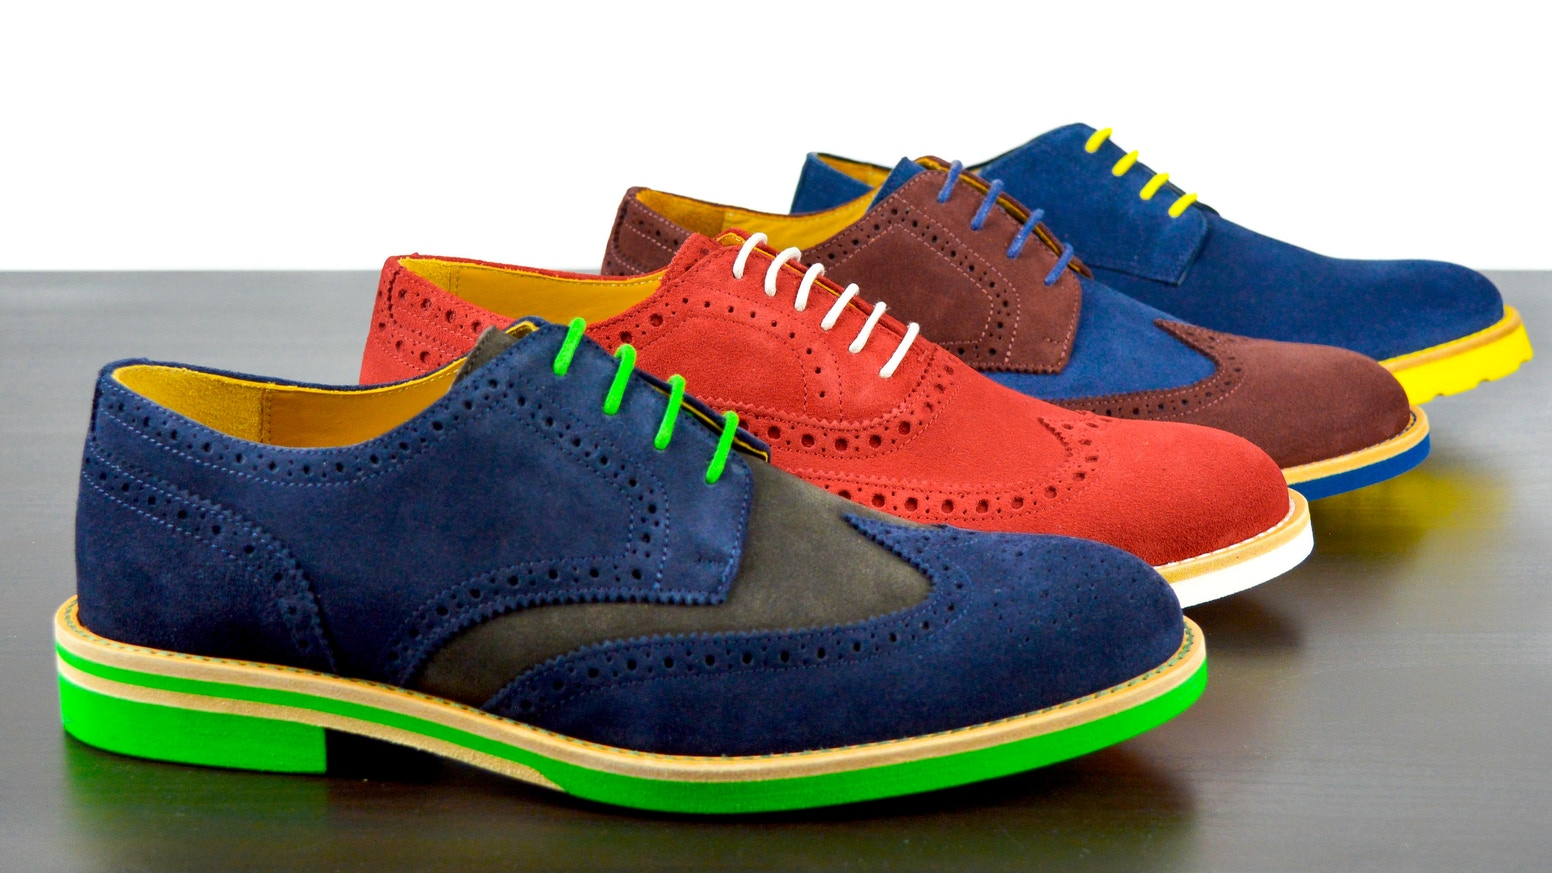 Express your personality and stand out from the crowd with classic dress shoes reimagined with bursts of color.